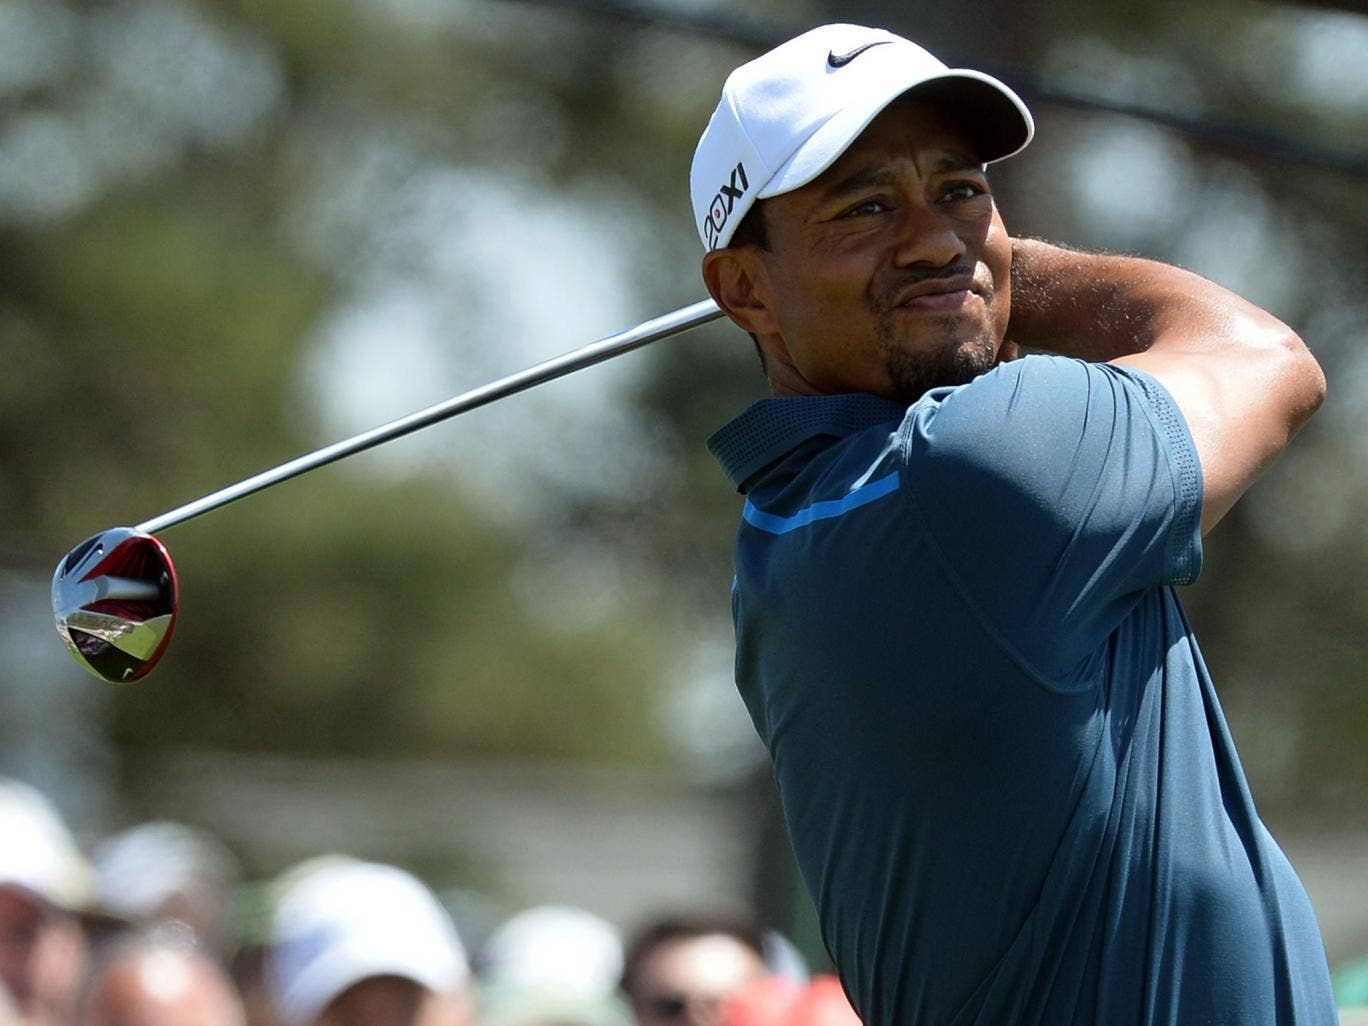 Tiger Woods teed off mired in a rules controversy after taking an incorrect drop on Friday